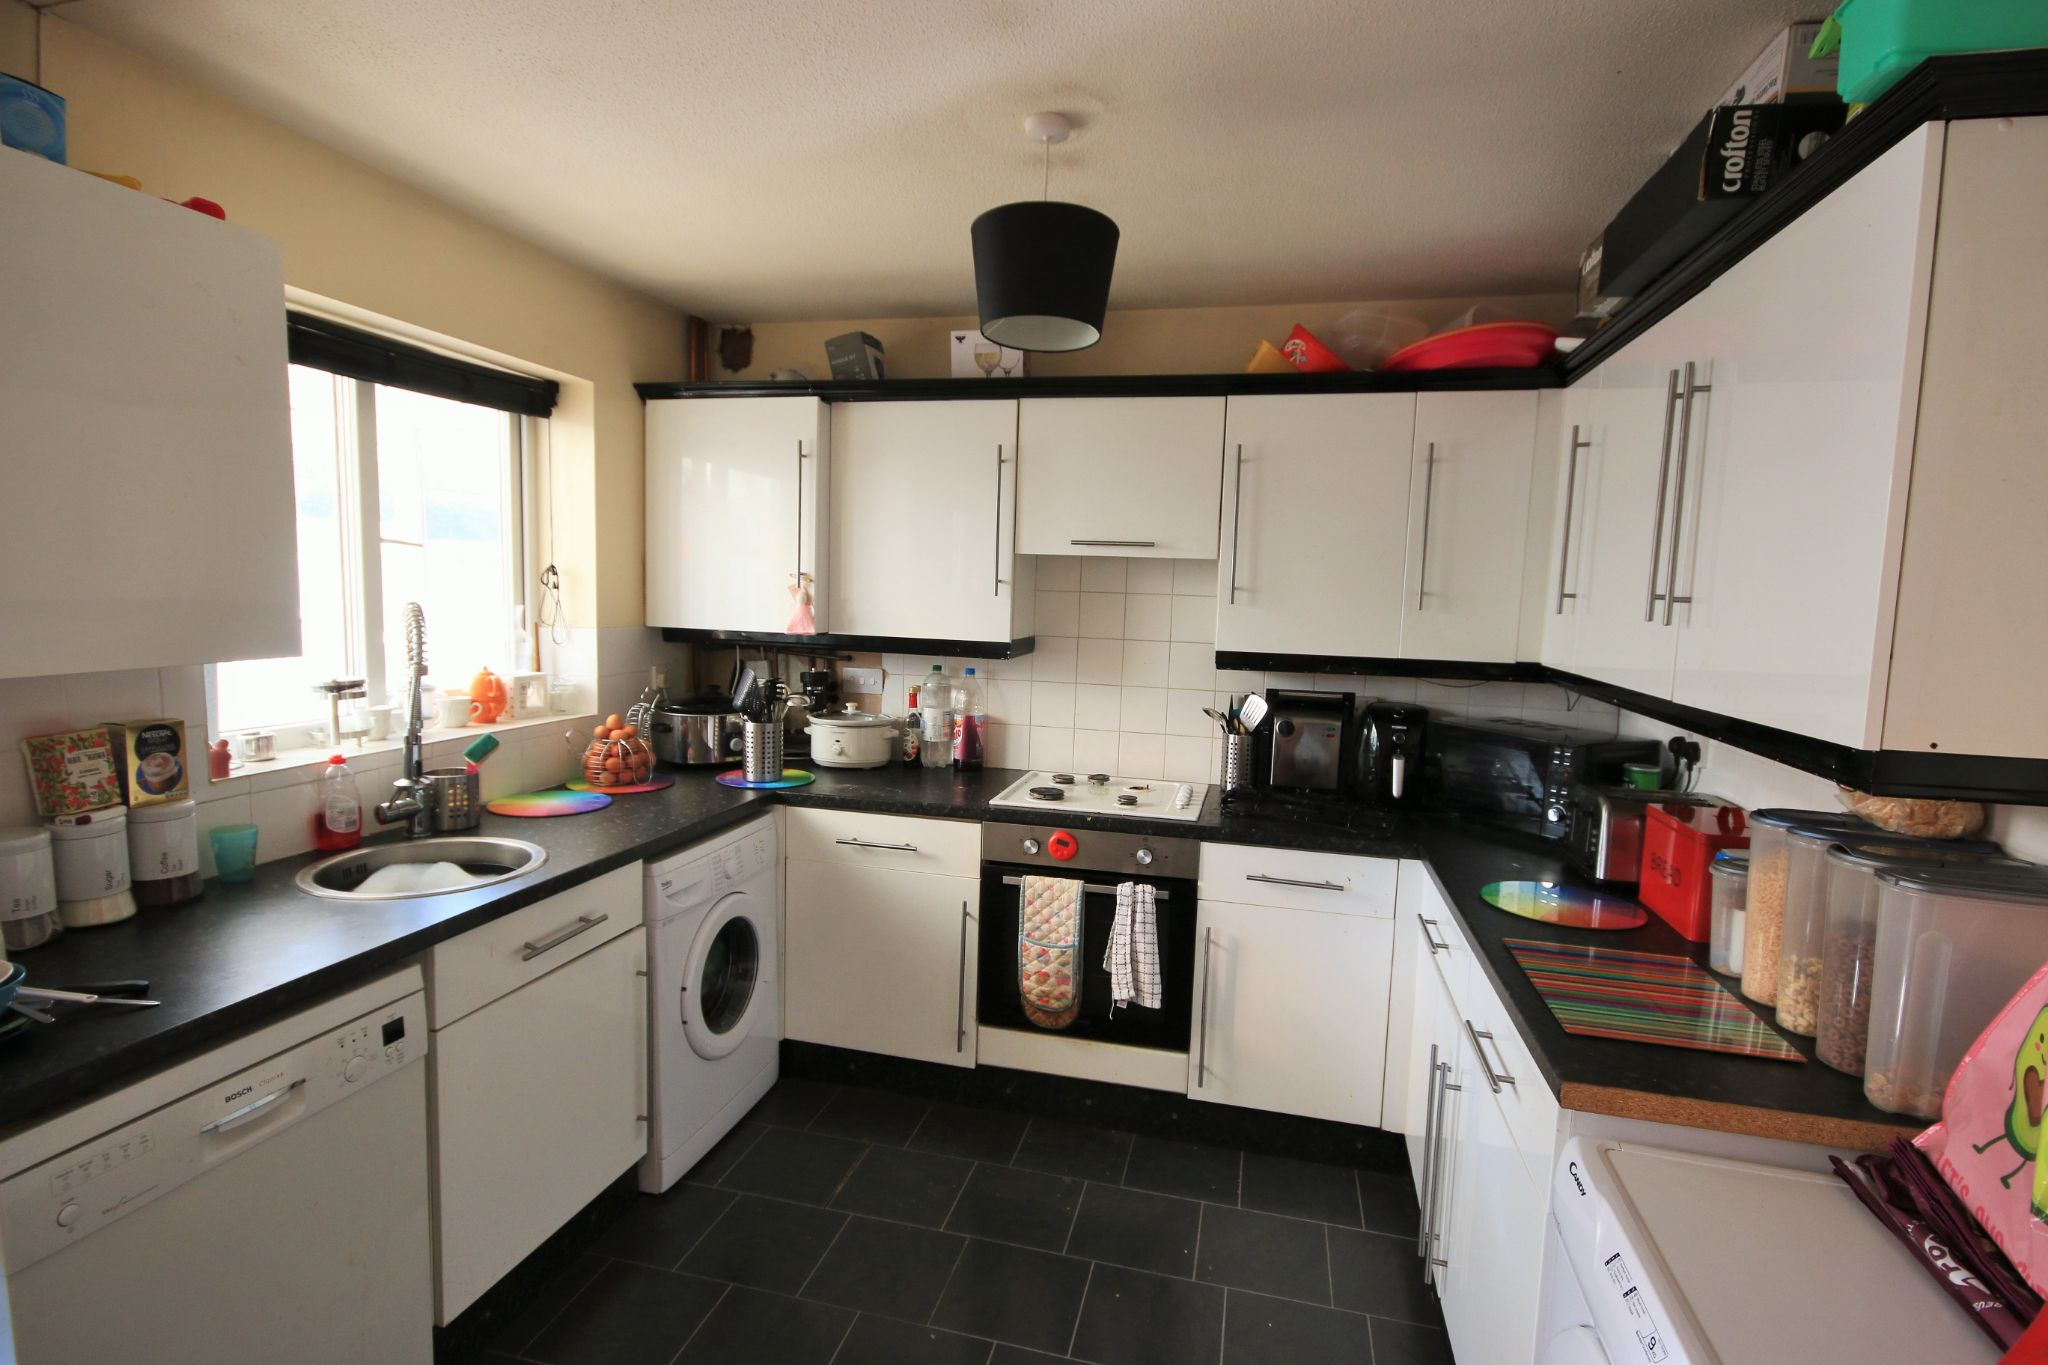 3 Bedroom Detached House For Sale - Photograph 3